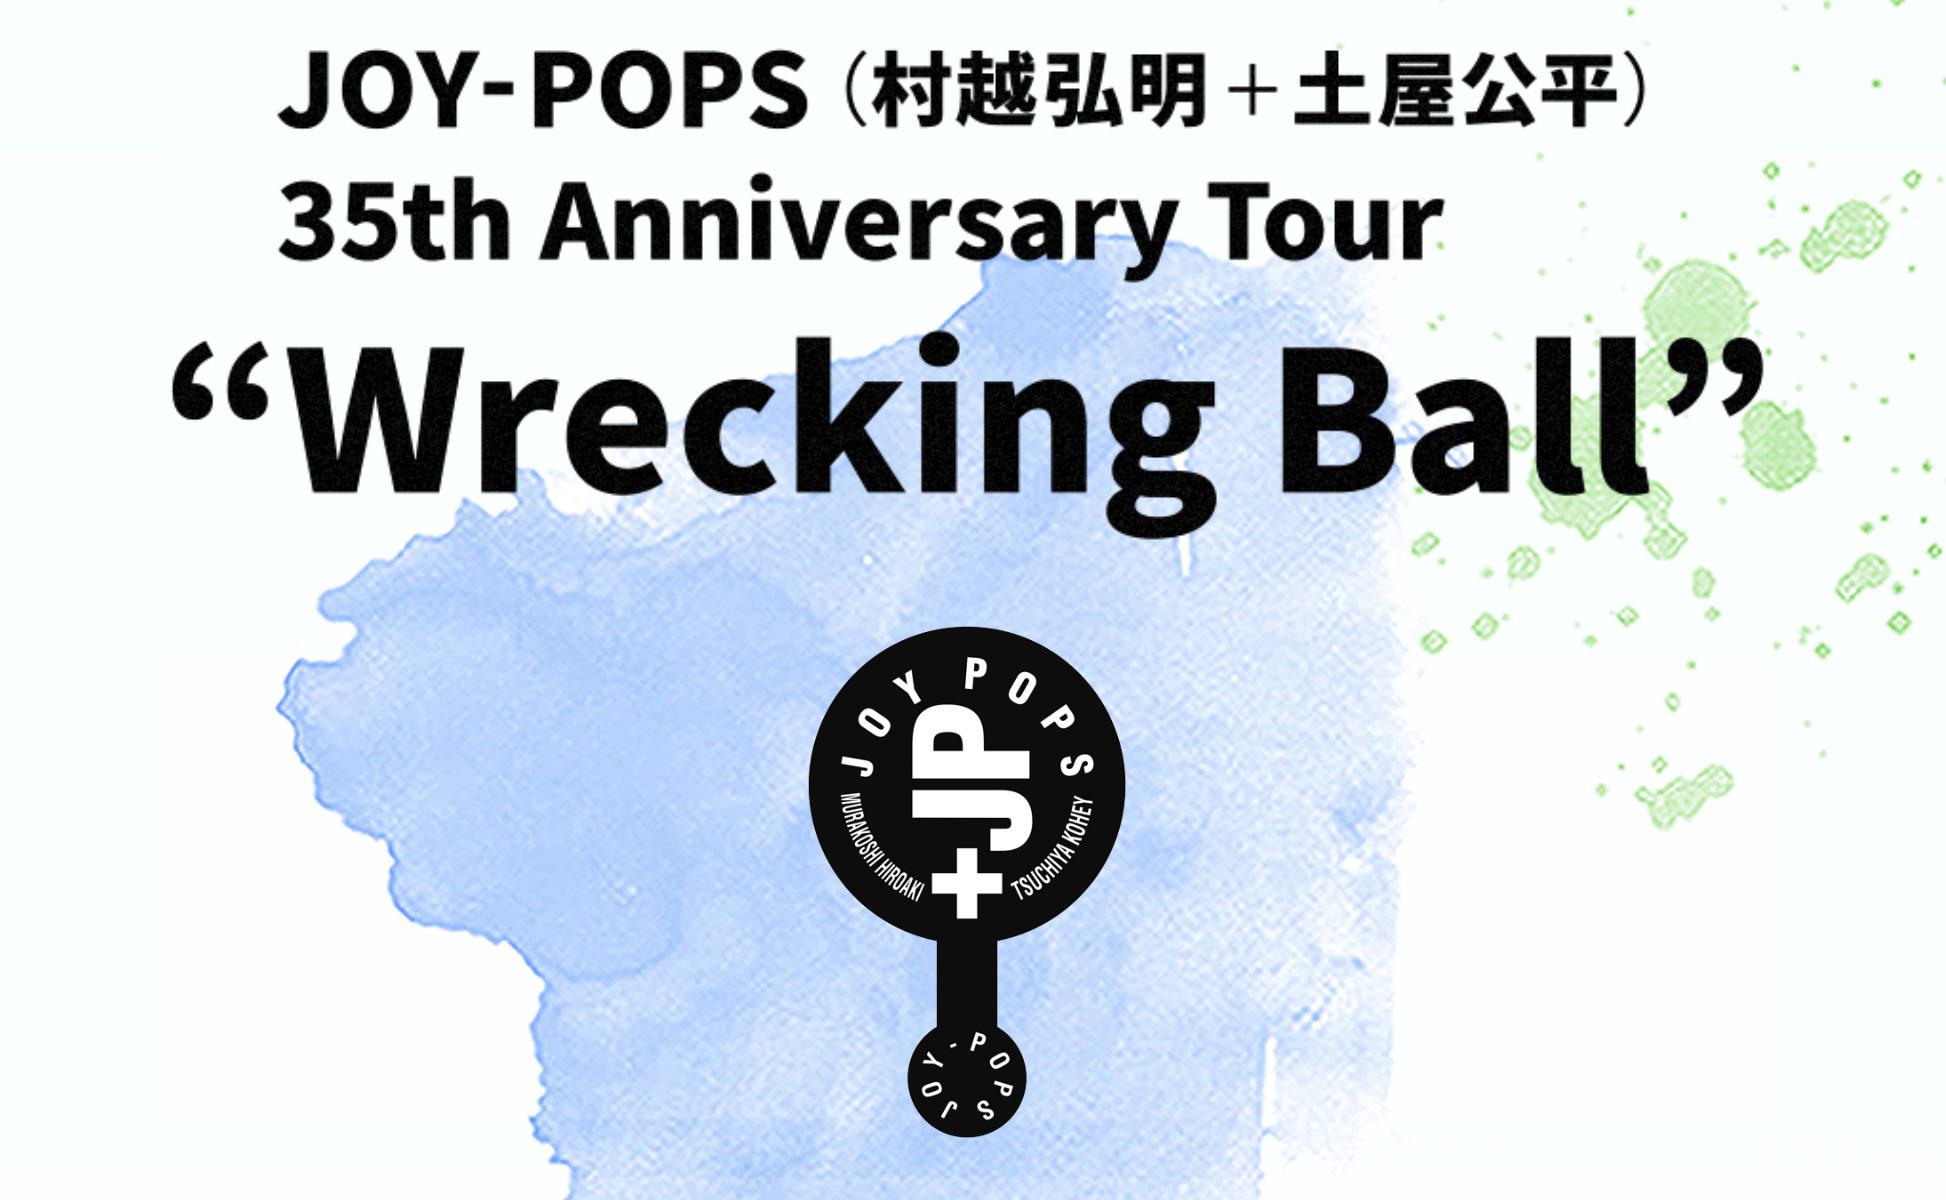 "JOY-POPS(村越弘明+土屋公平) 35th Anniversary Tour ""Wrecking Ball""スタート"